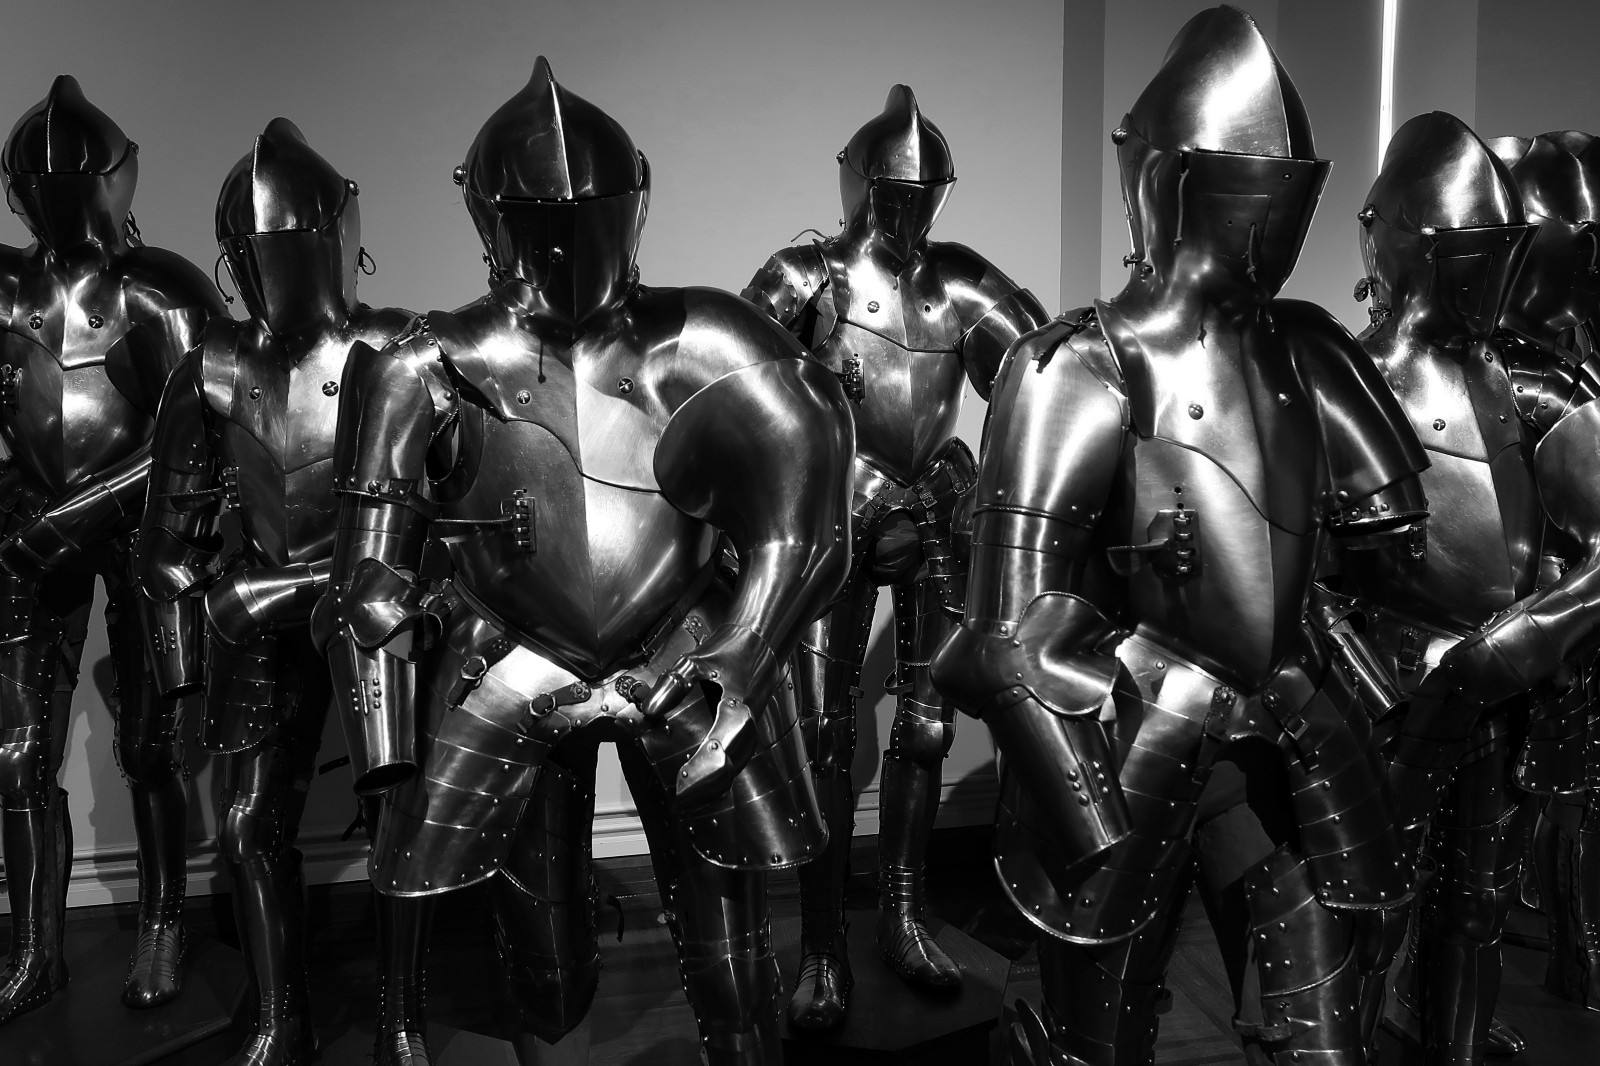 Beliefs are cumbersome, like medieval knight gear